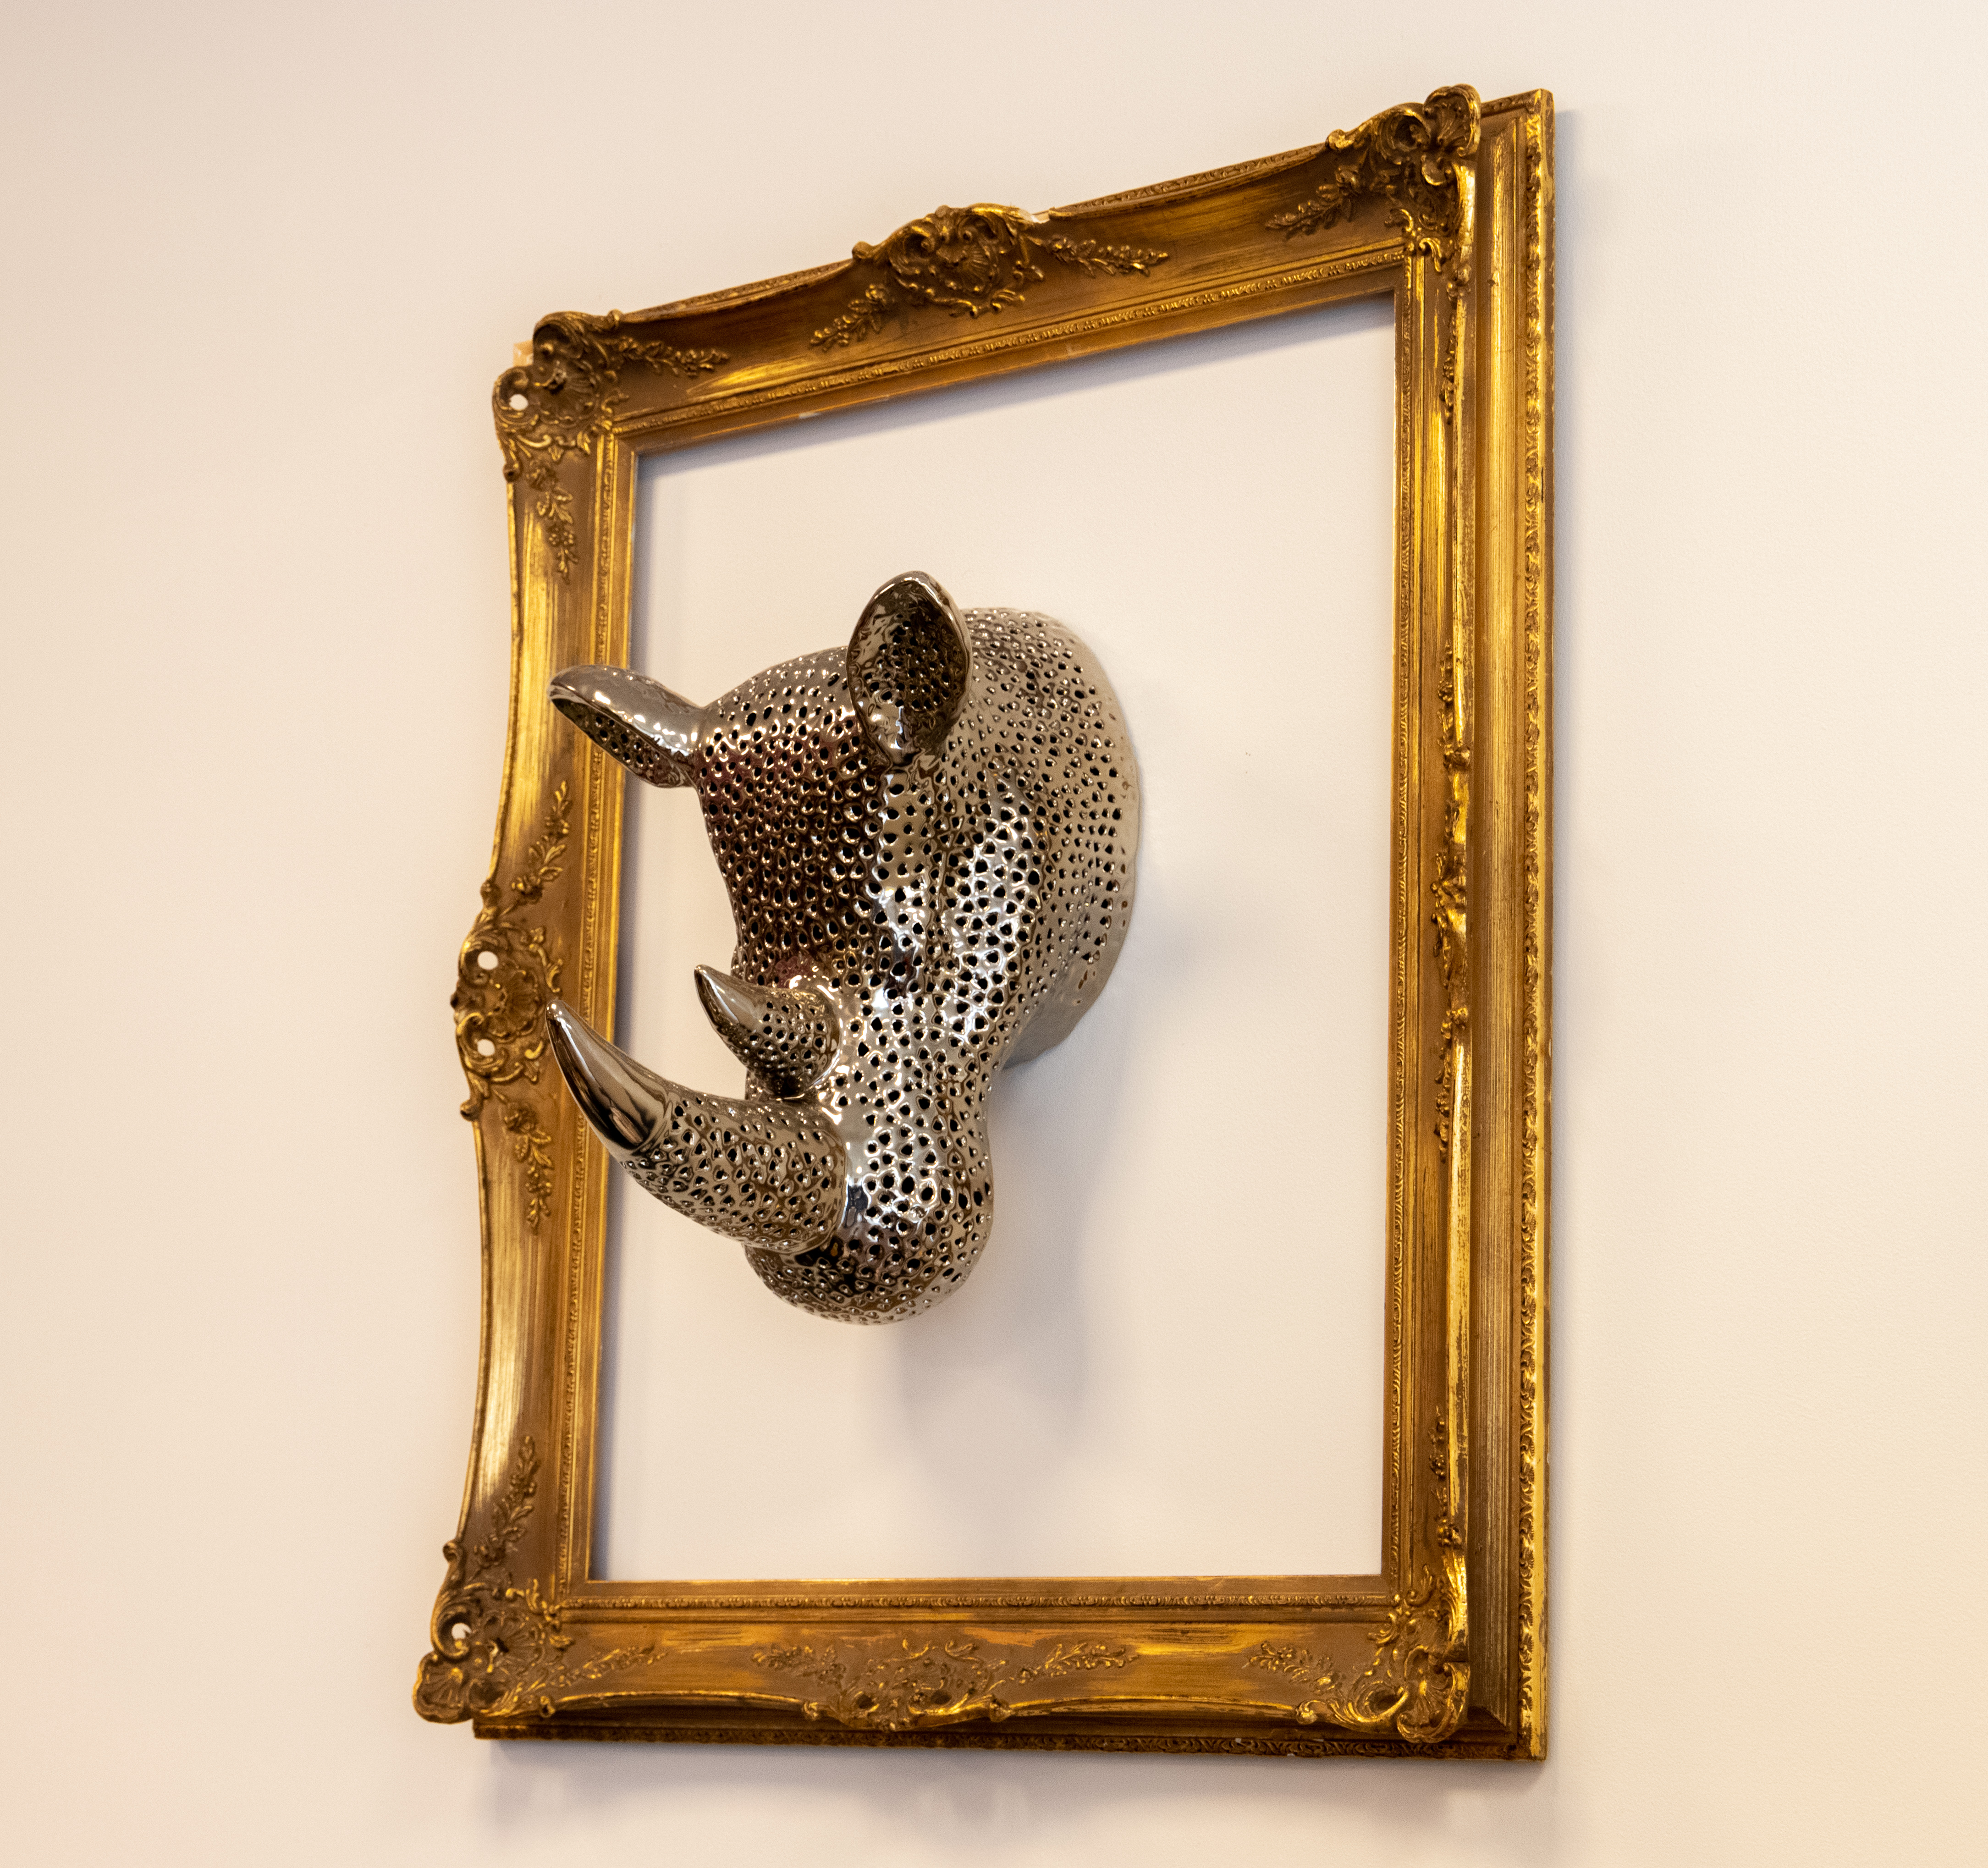 3D rhinos head in frame hanging on wall by Clive Wells